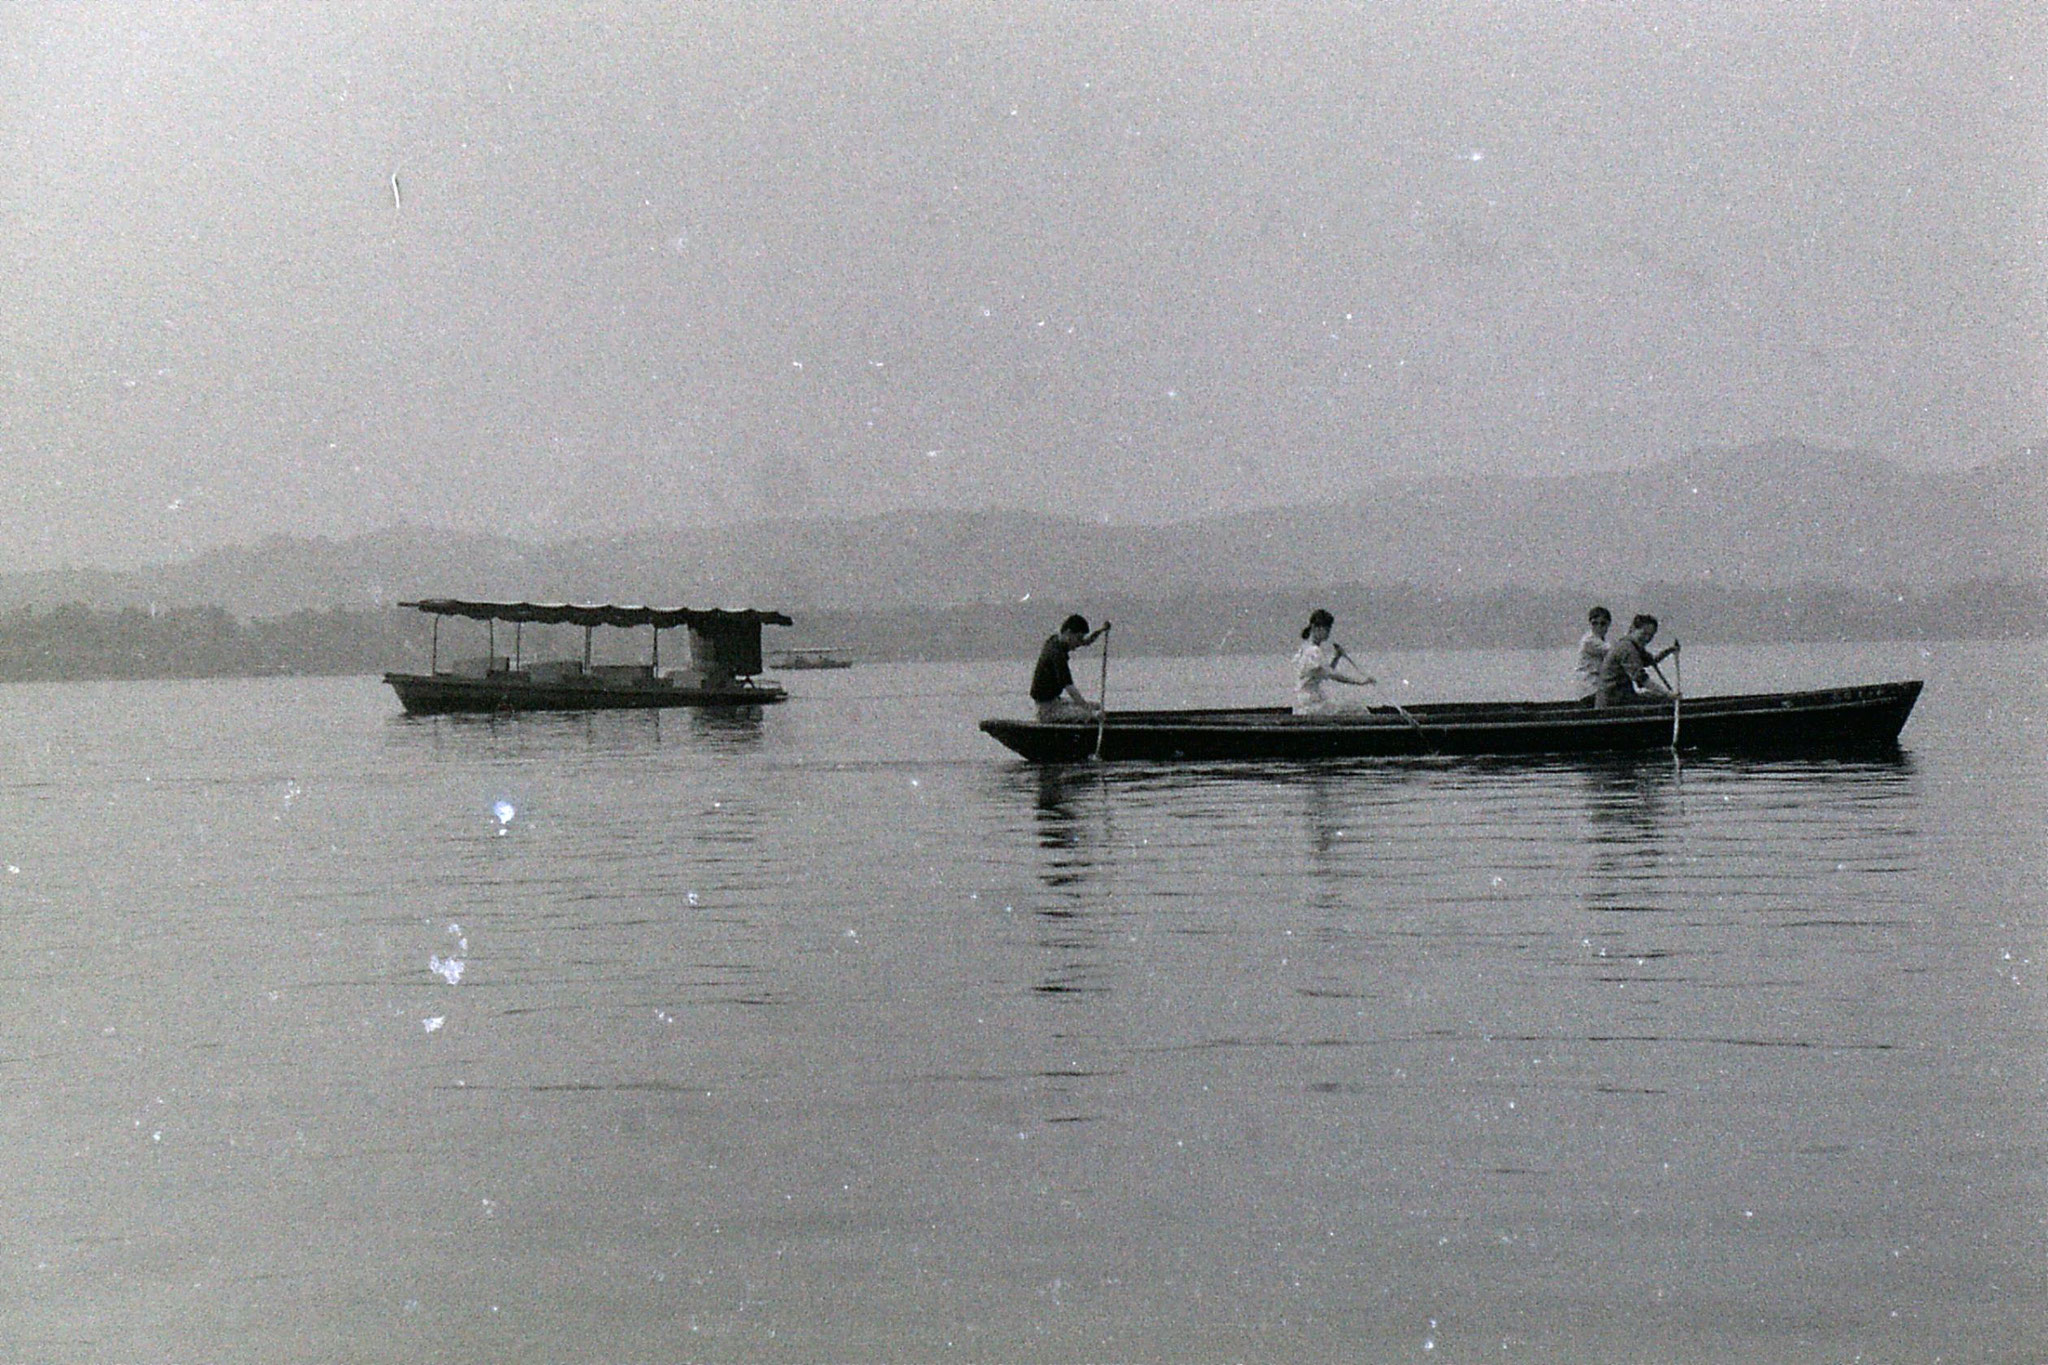 19/6/1989: 31: group visit to West Lake